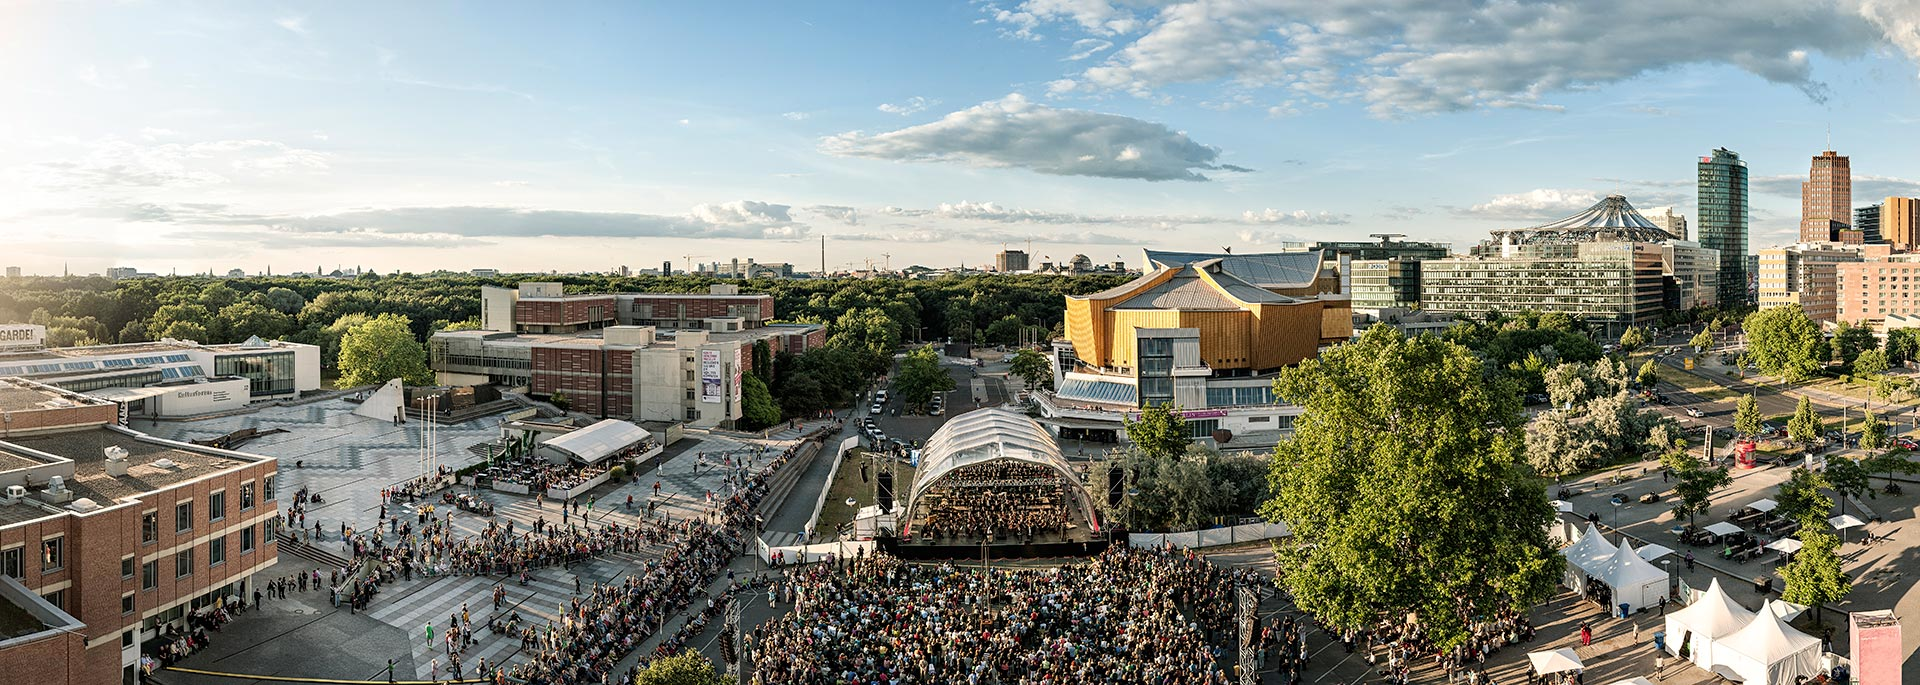 Panorama Berlin Berliner Philharmoniker